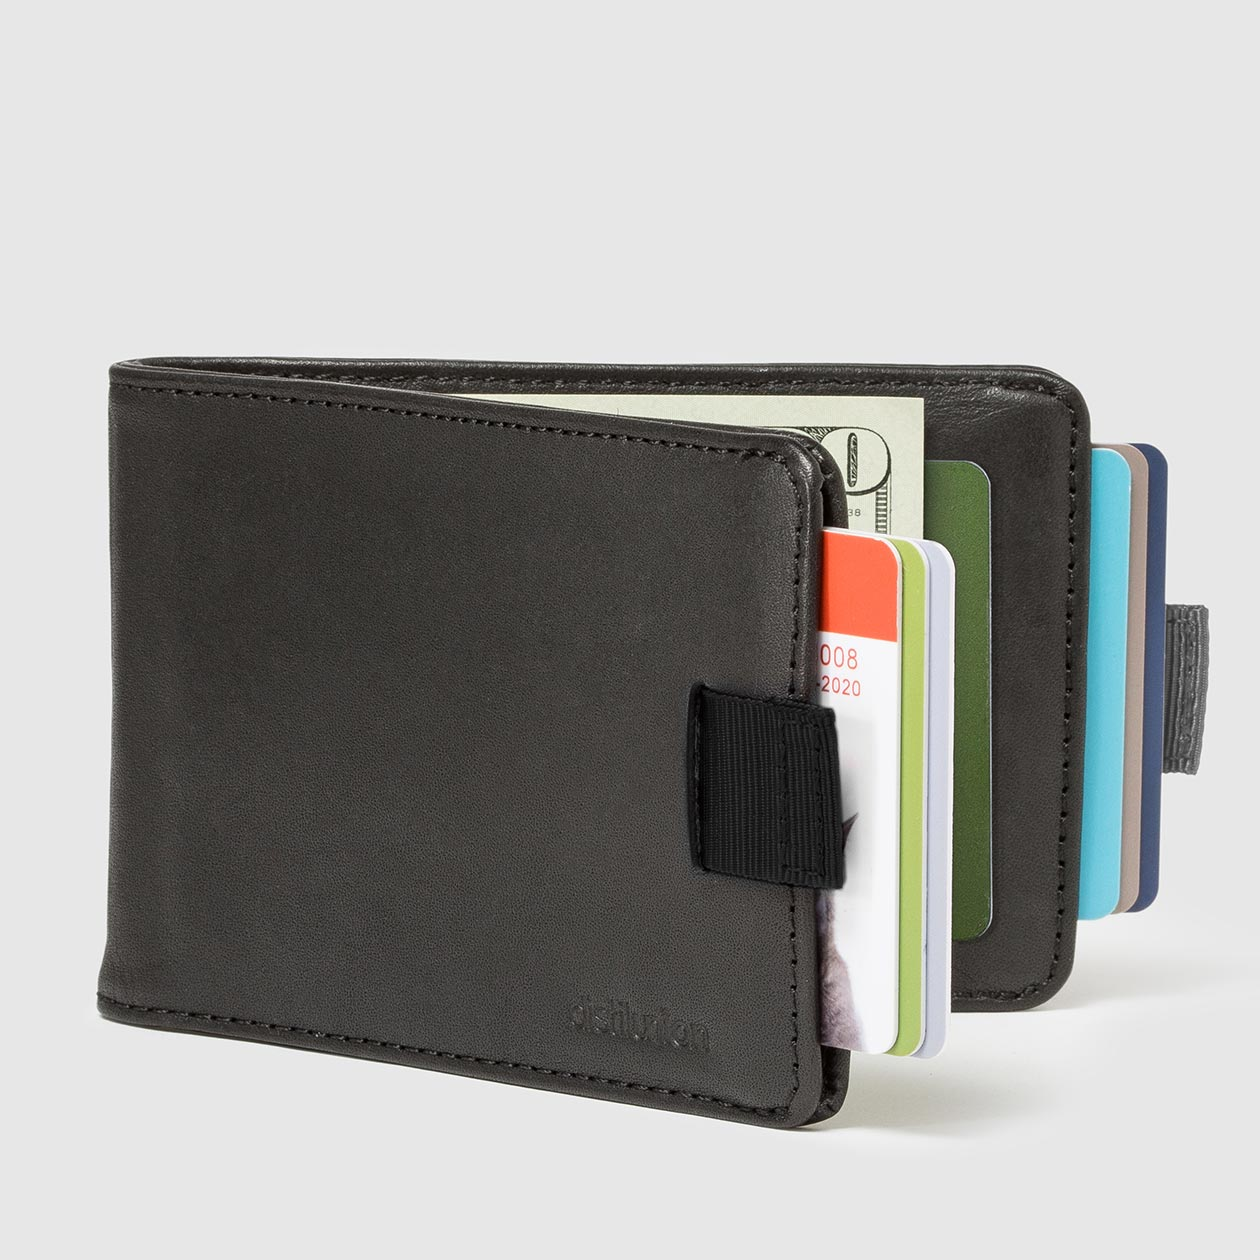 Best Slim Wallet 2020 Distil Union | Leather Wallets | iPhone Wallet Case | Phone Dock